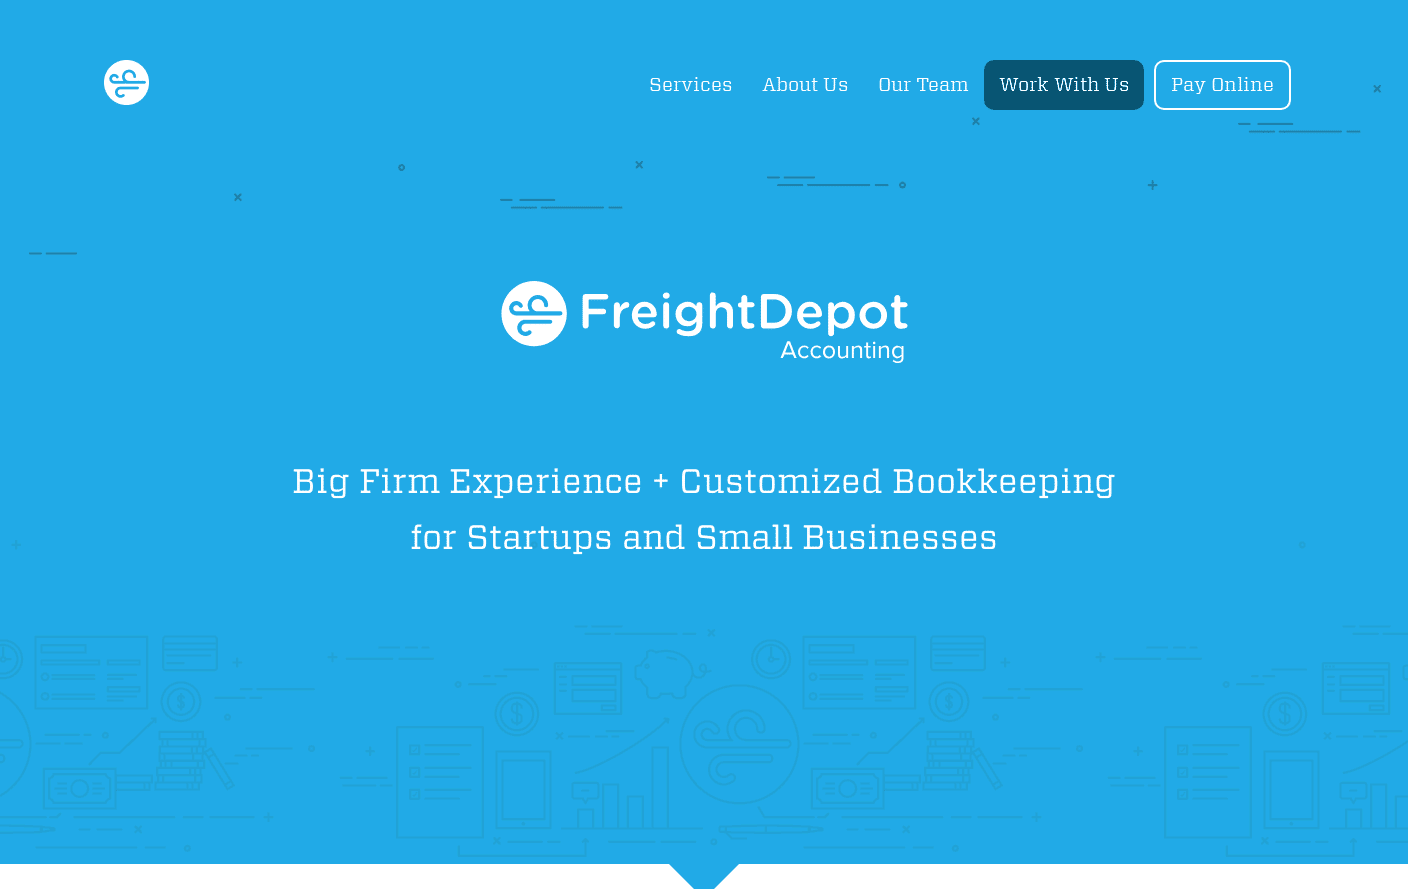 Freight Depot Accounting